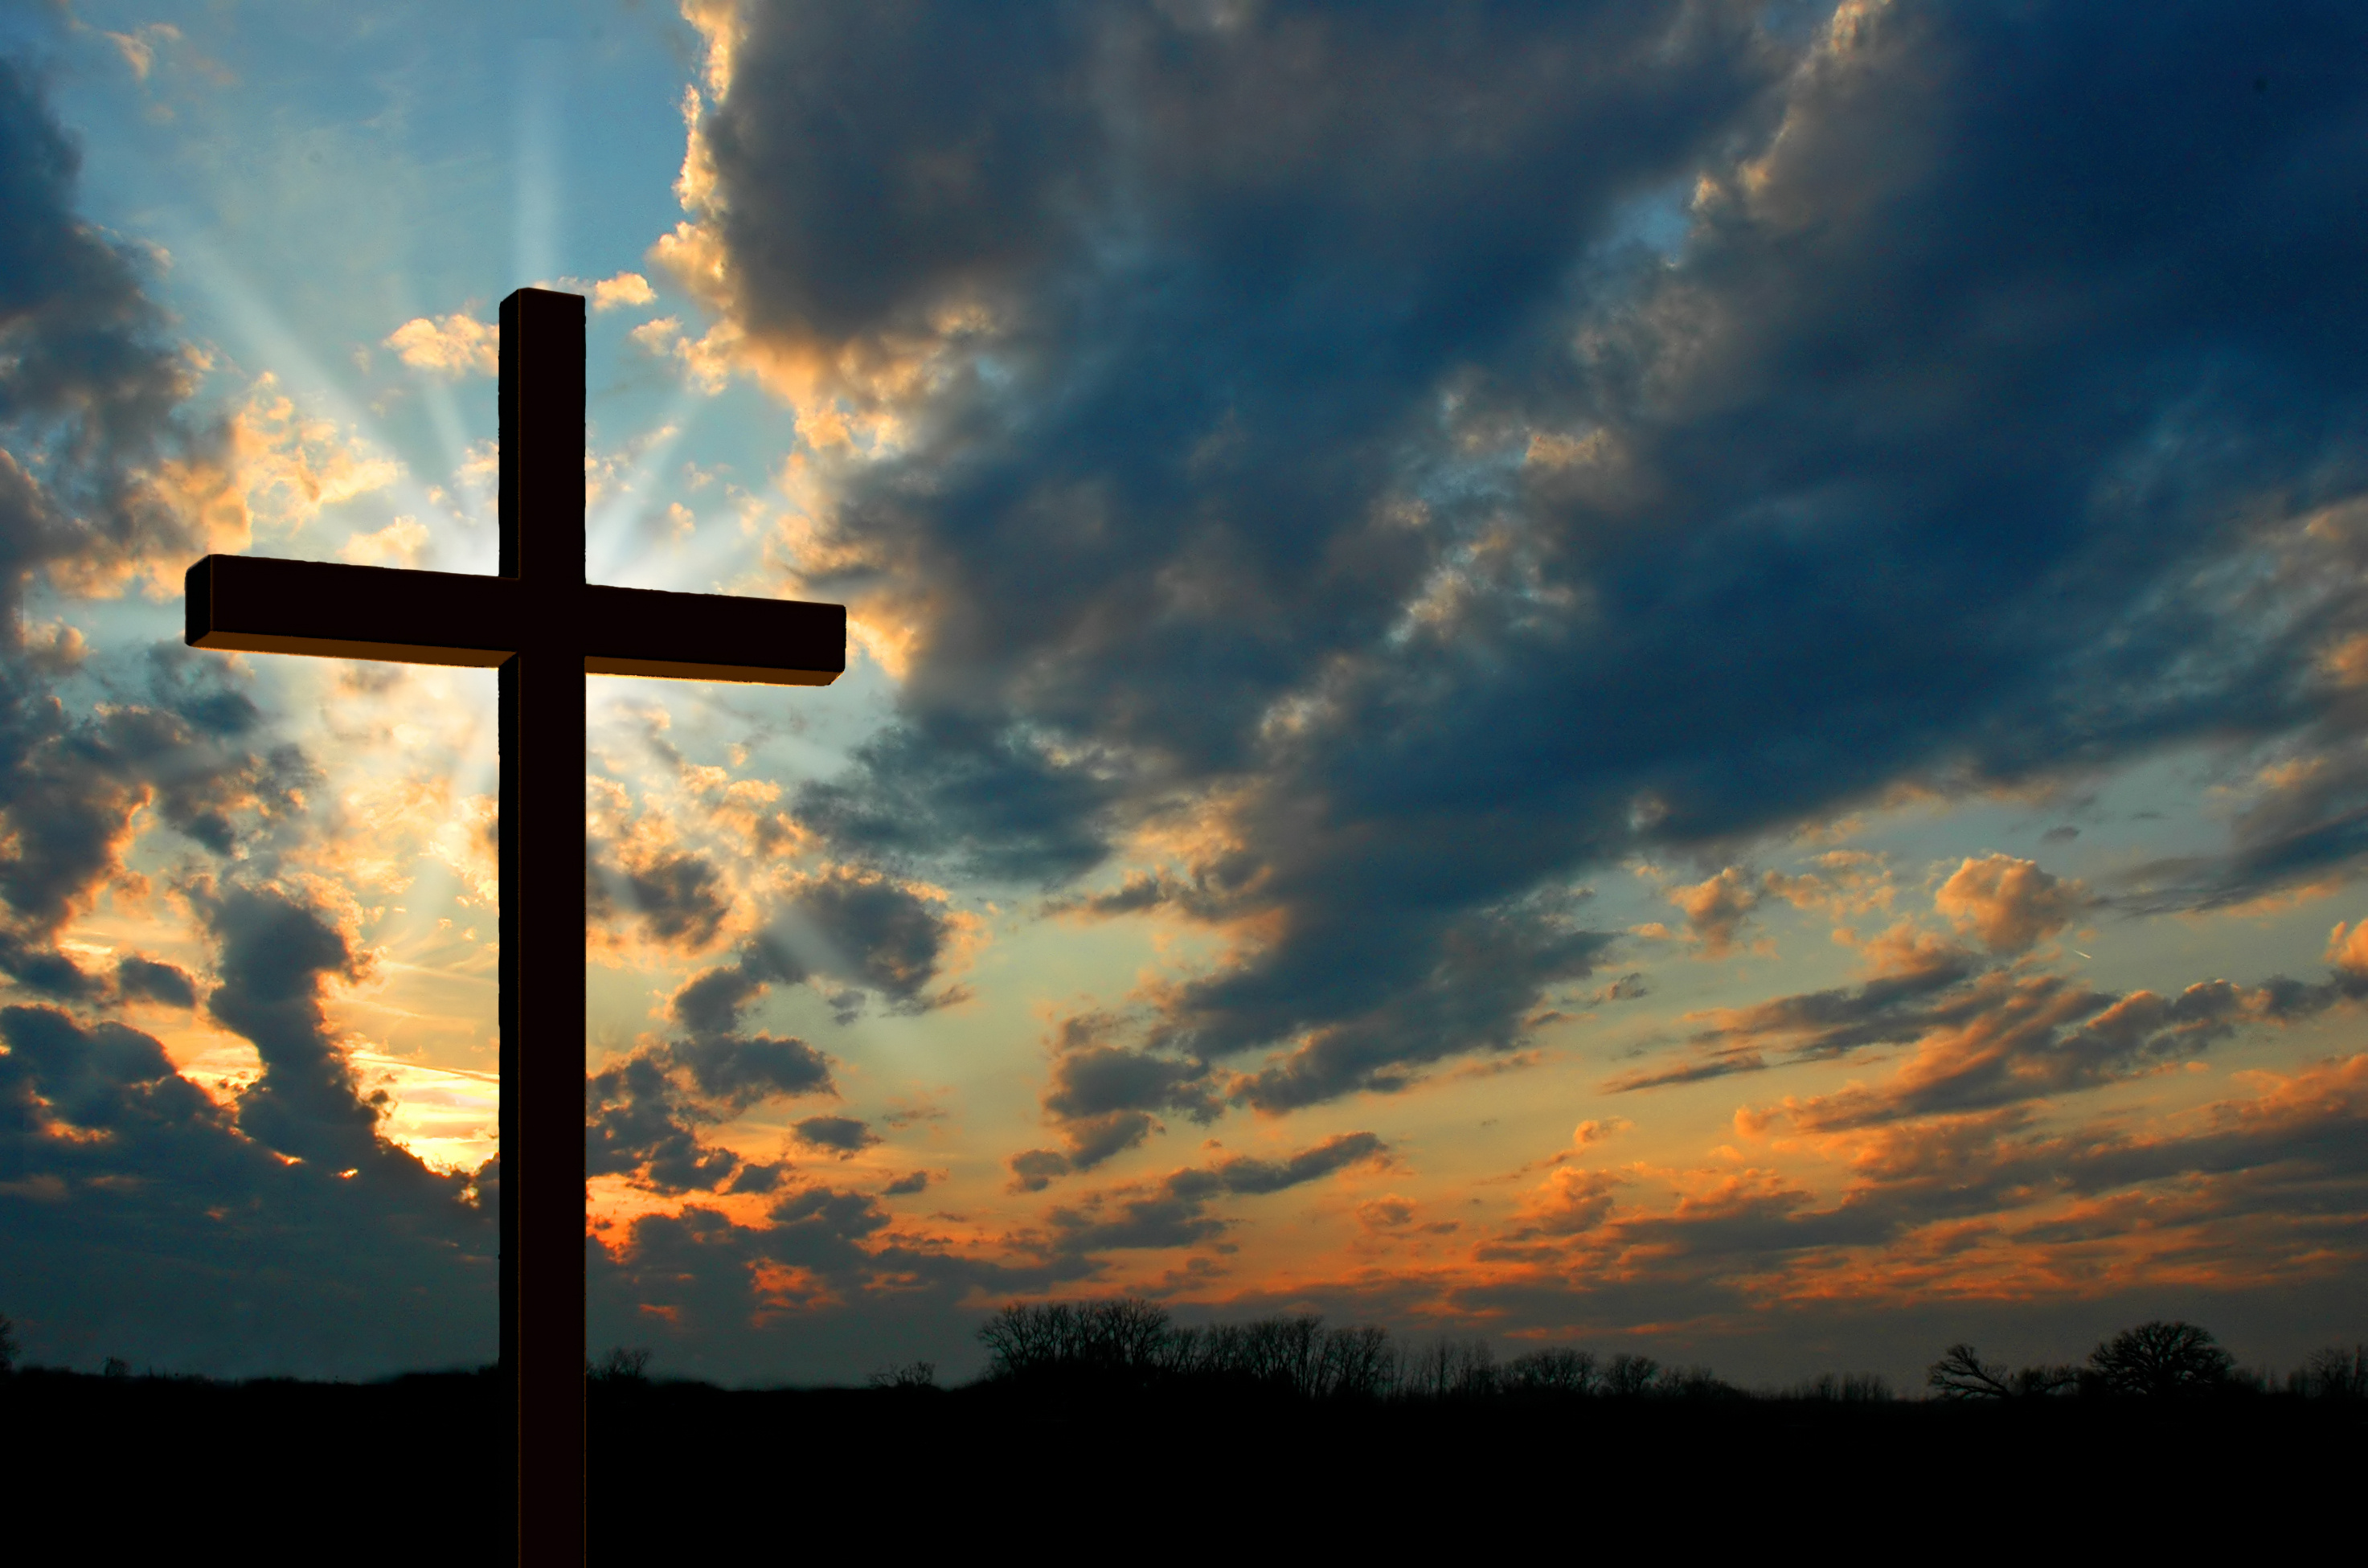 Cross wallpapers wallpaper hd wallpapers pinterest cross cross wallpapers wallpaper voltagebd Image collections